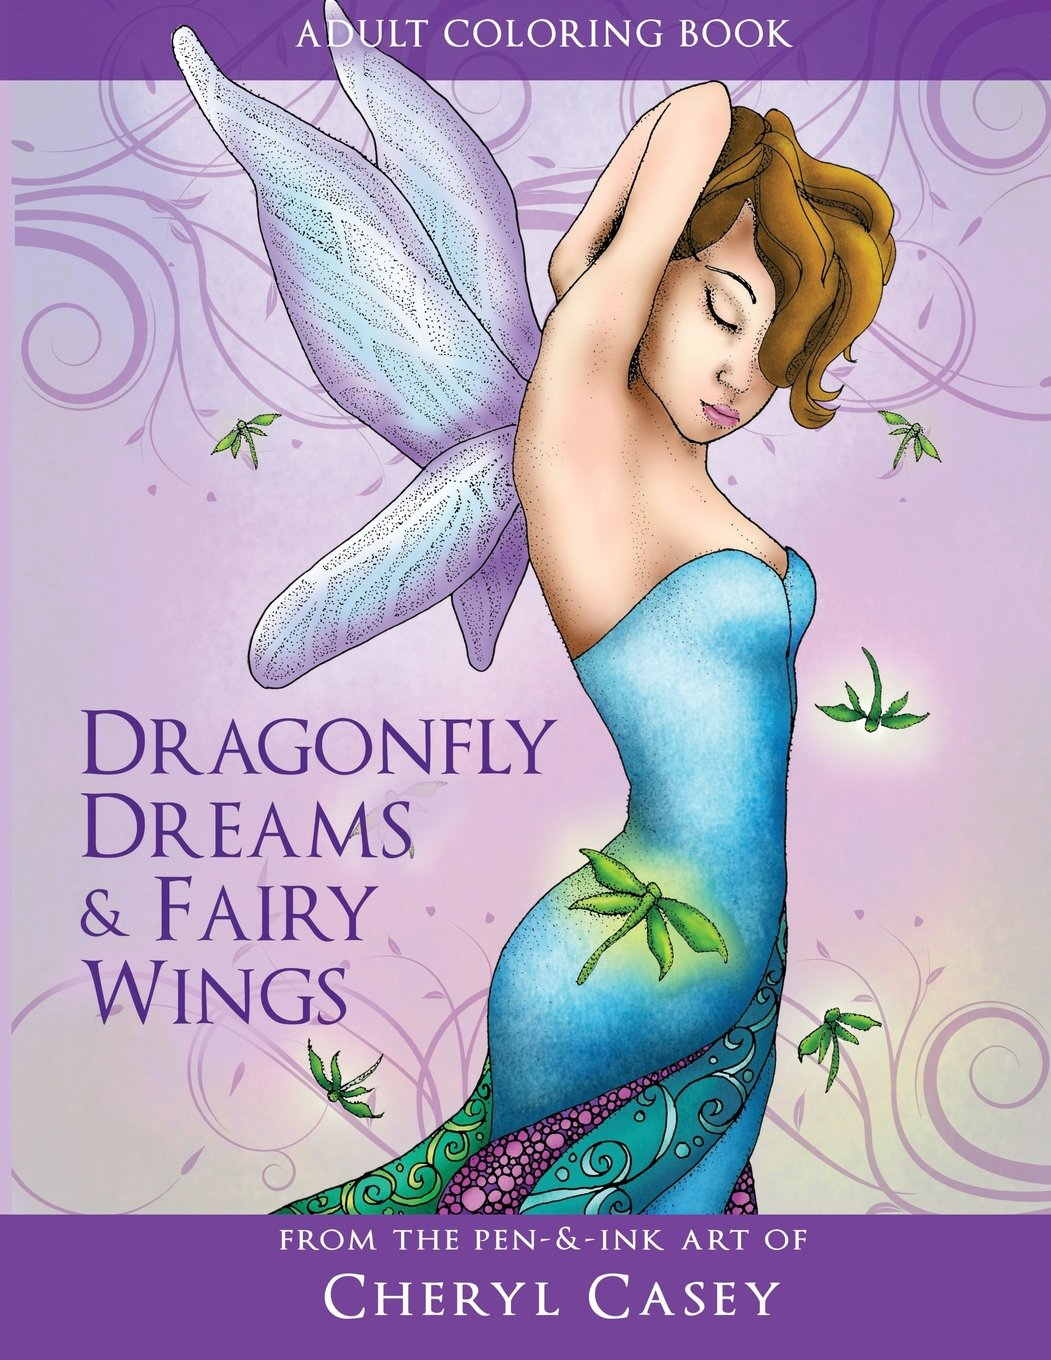 Adult Coloring Book Dragonfly Grown Ups product image